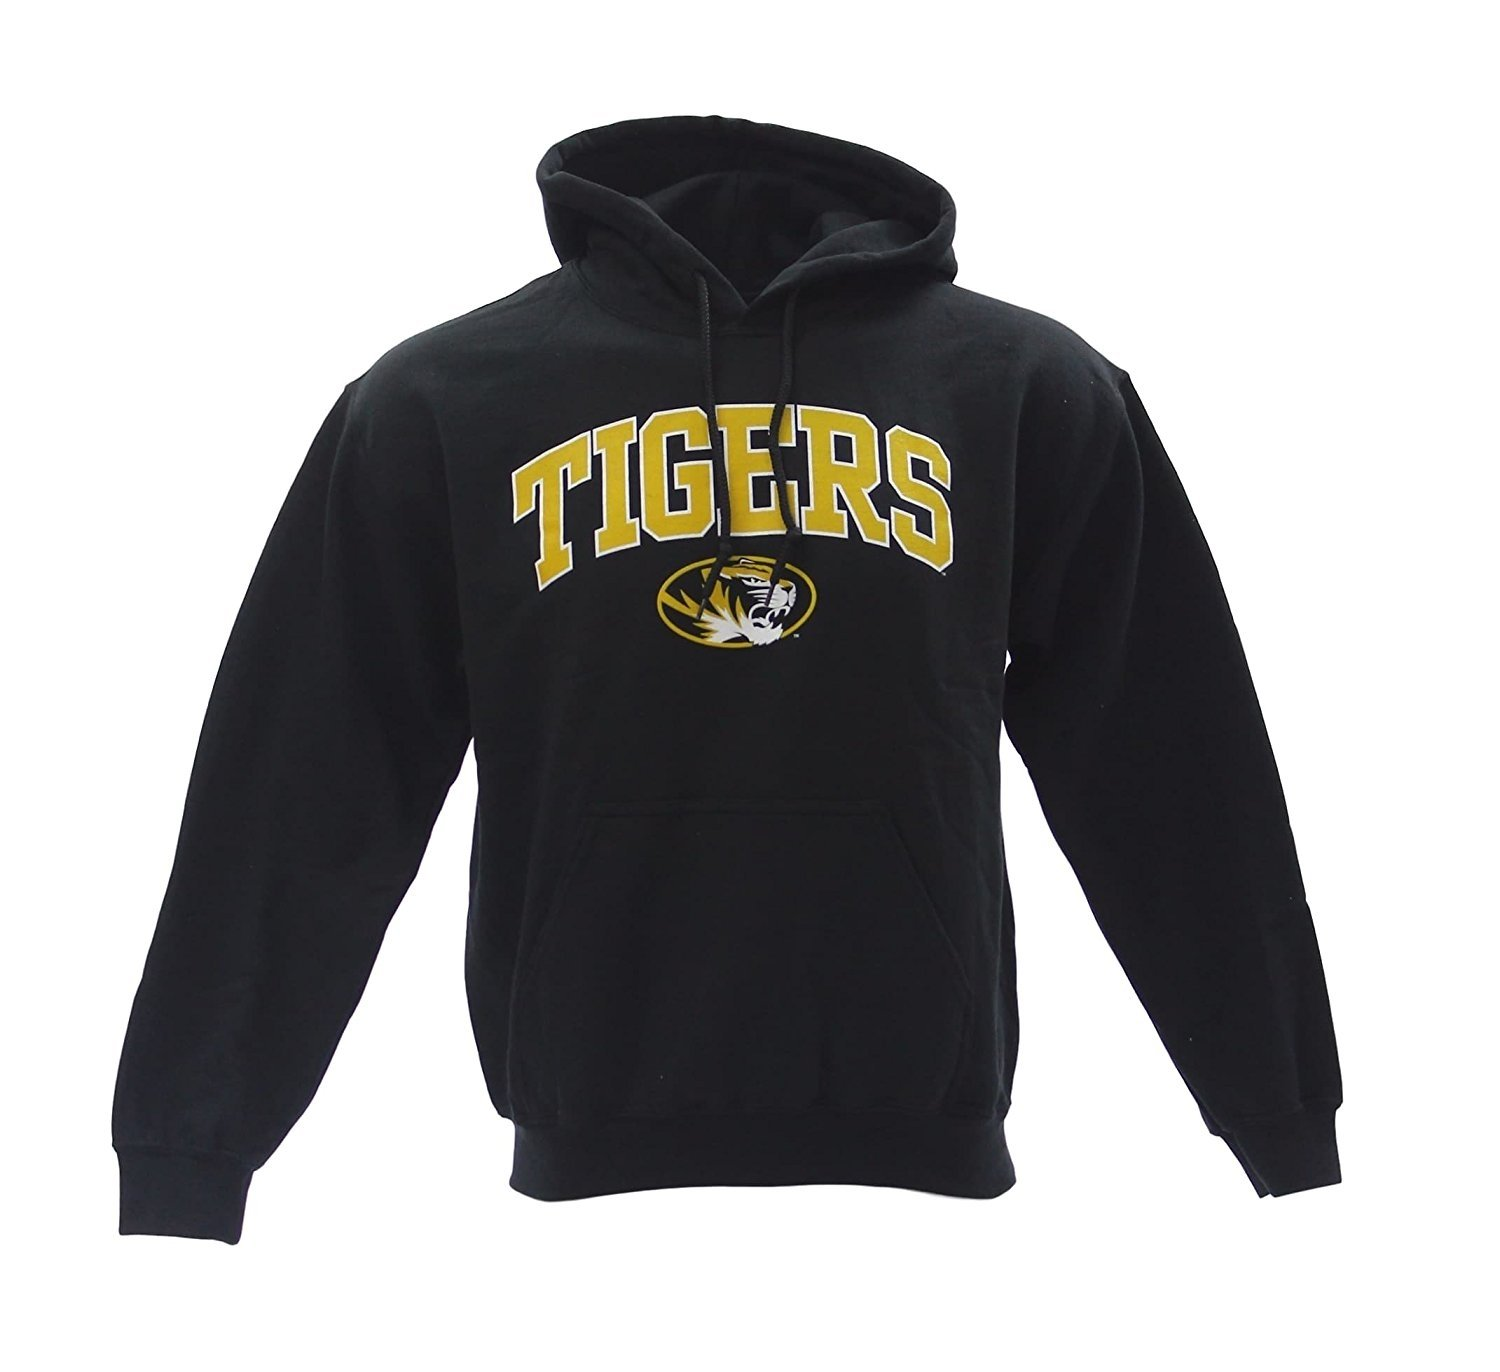 A|S Sports Men's Missouri tigers Sweat Shirt Hoodie